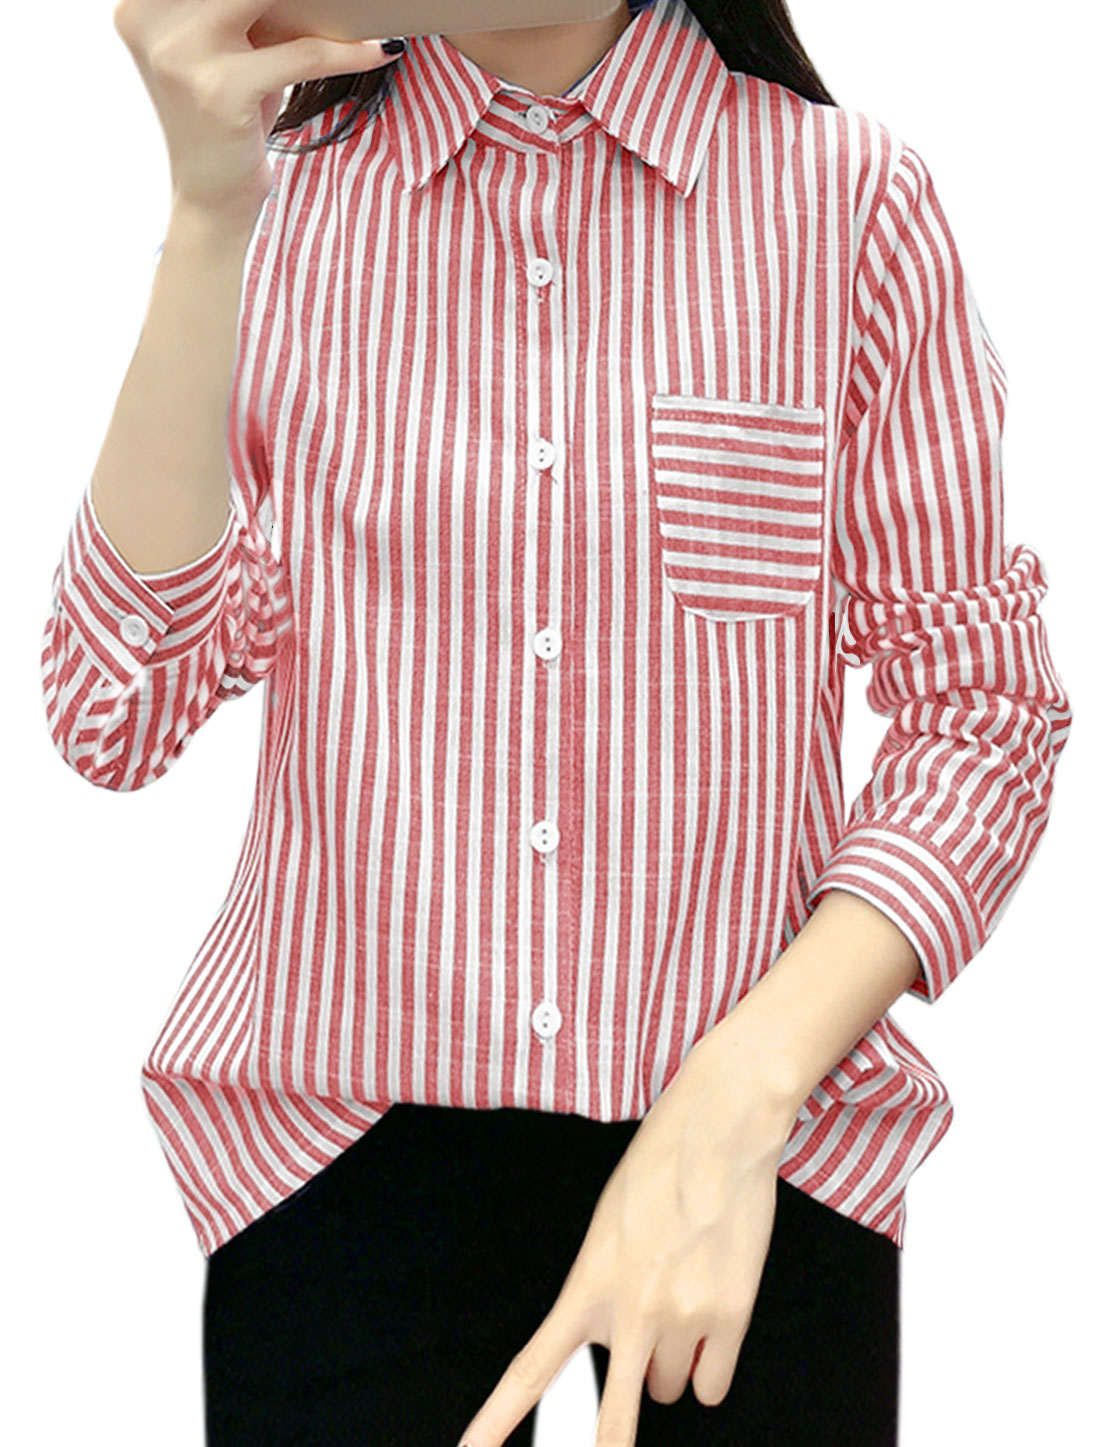 Women Stripes Single Breasted Long Sleeves Slim Fit Shirt Red XS